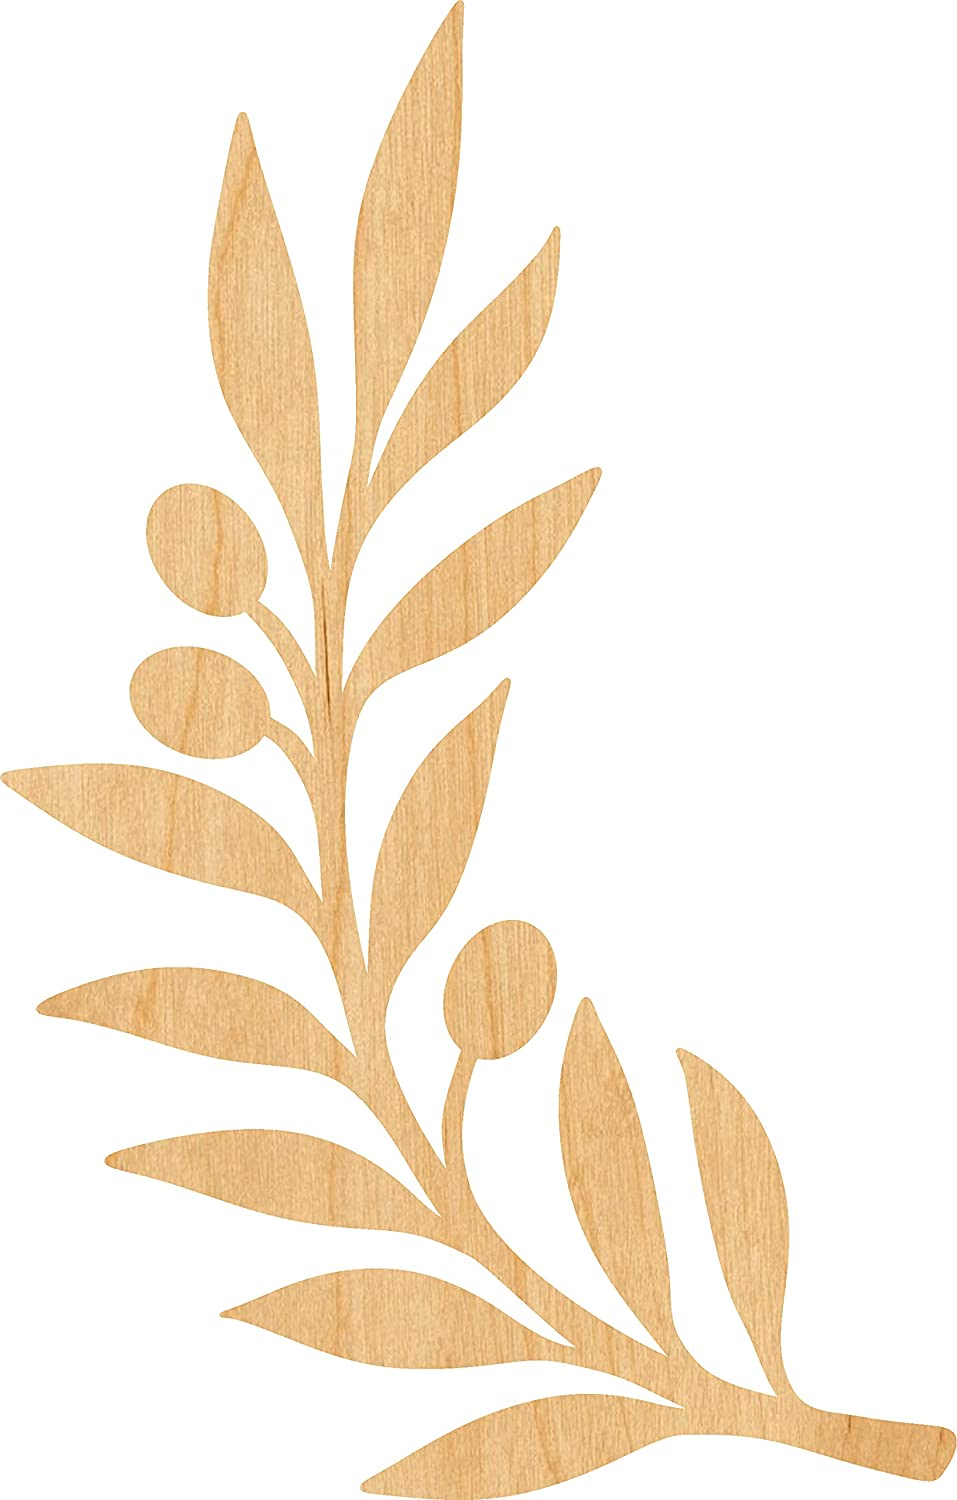 Olive Branch Laser Cut Out Wood Safety and trust 2